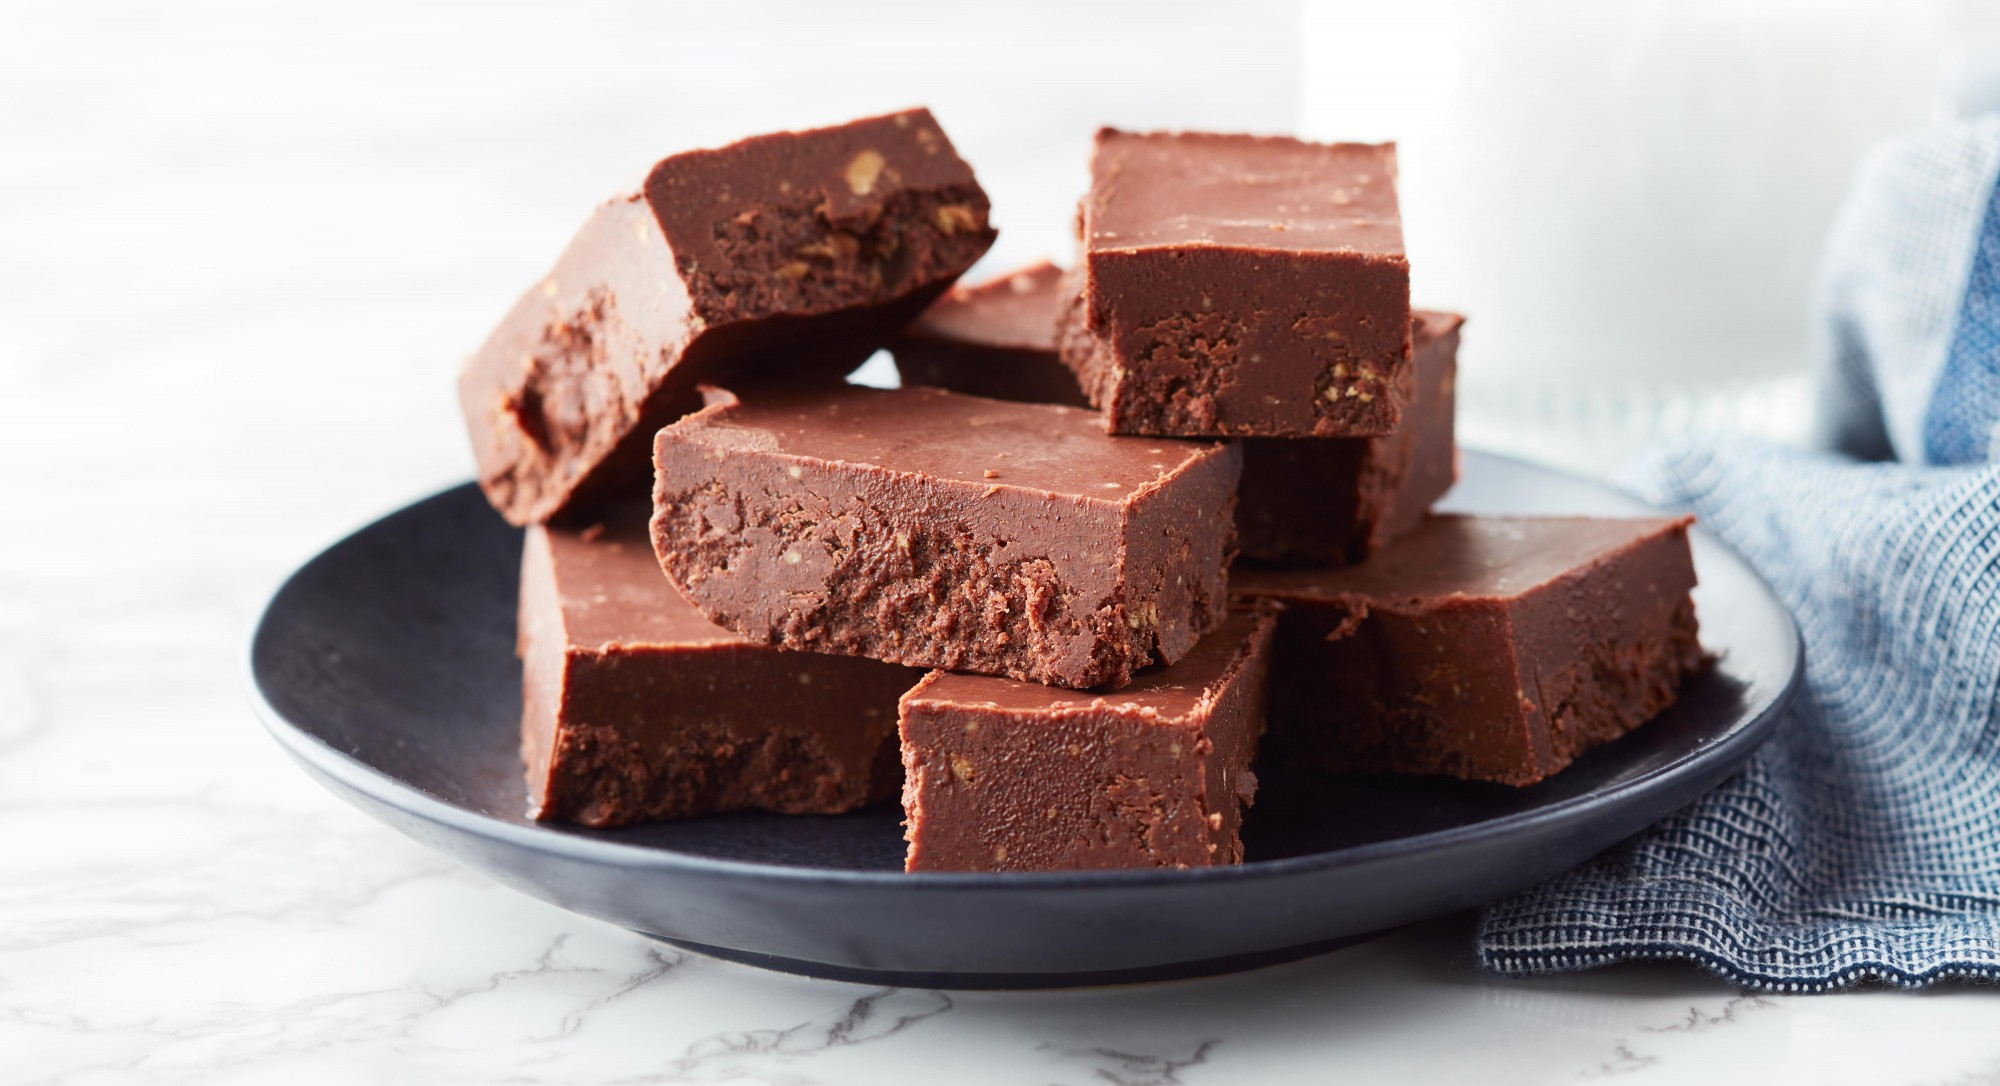 11 Creative Ways to Make Paleo-Friendly Fudge